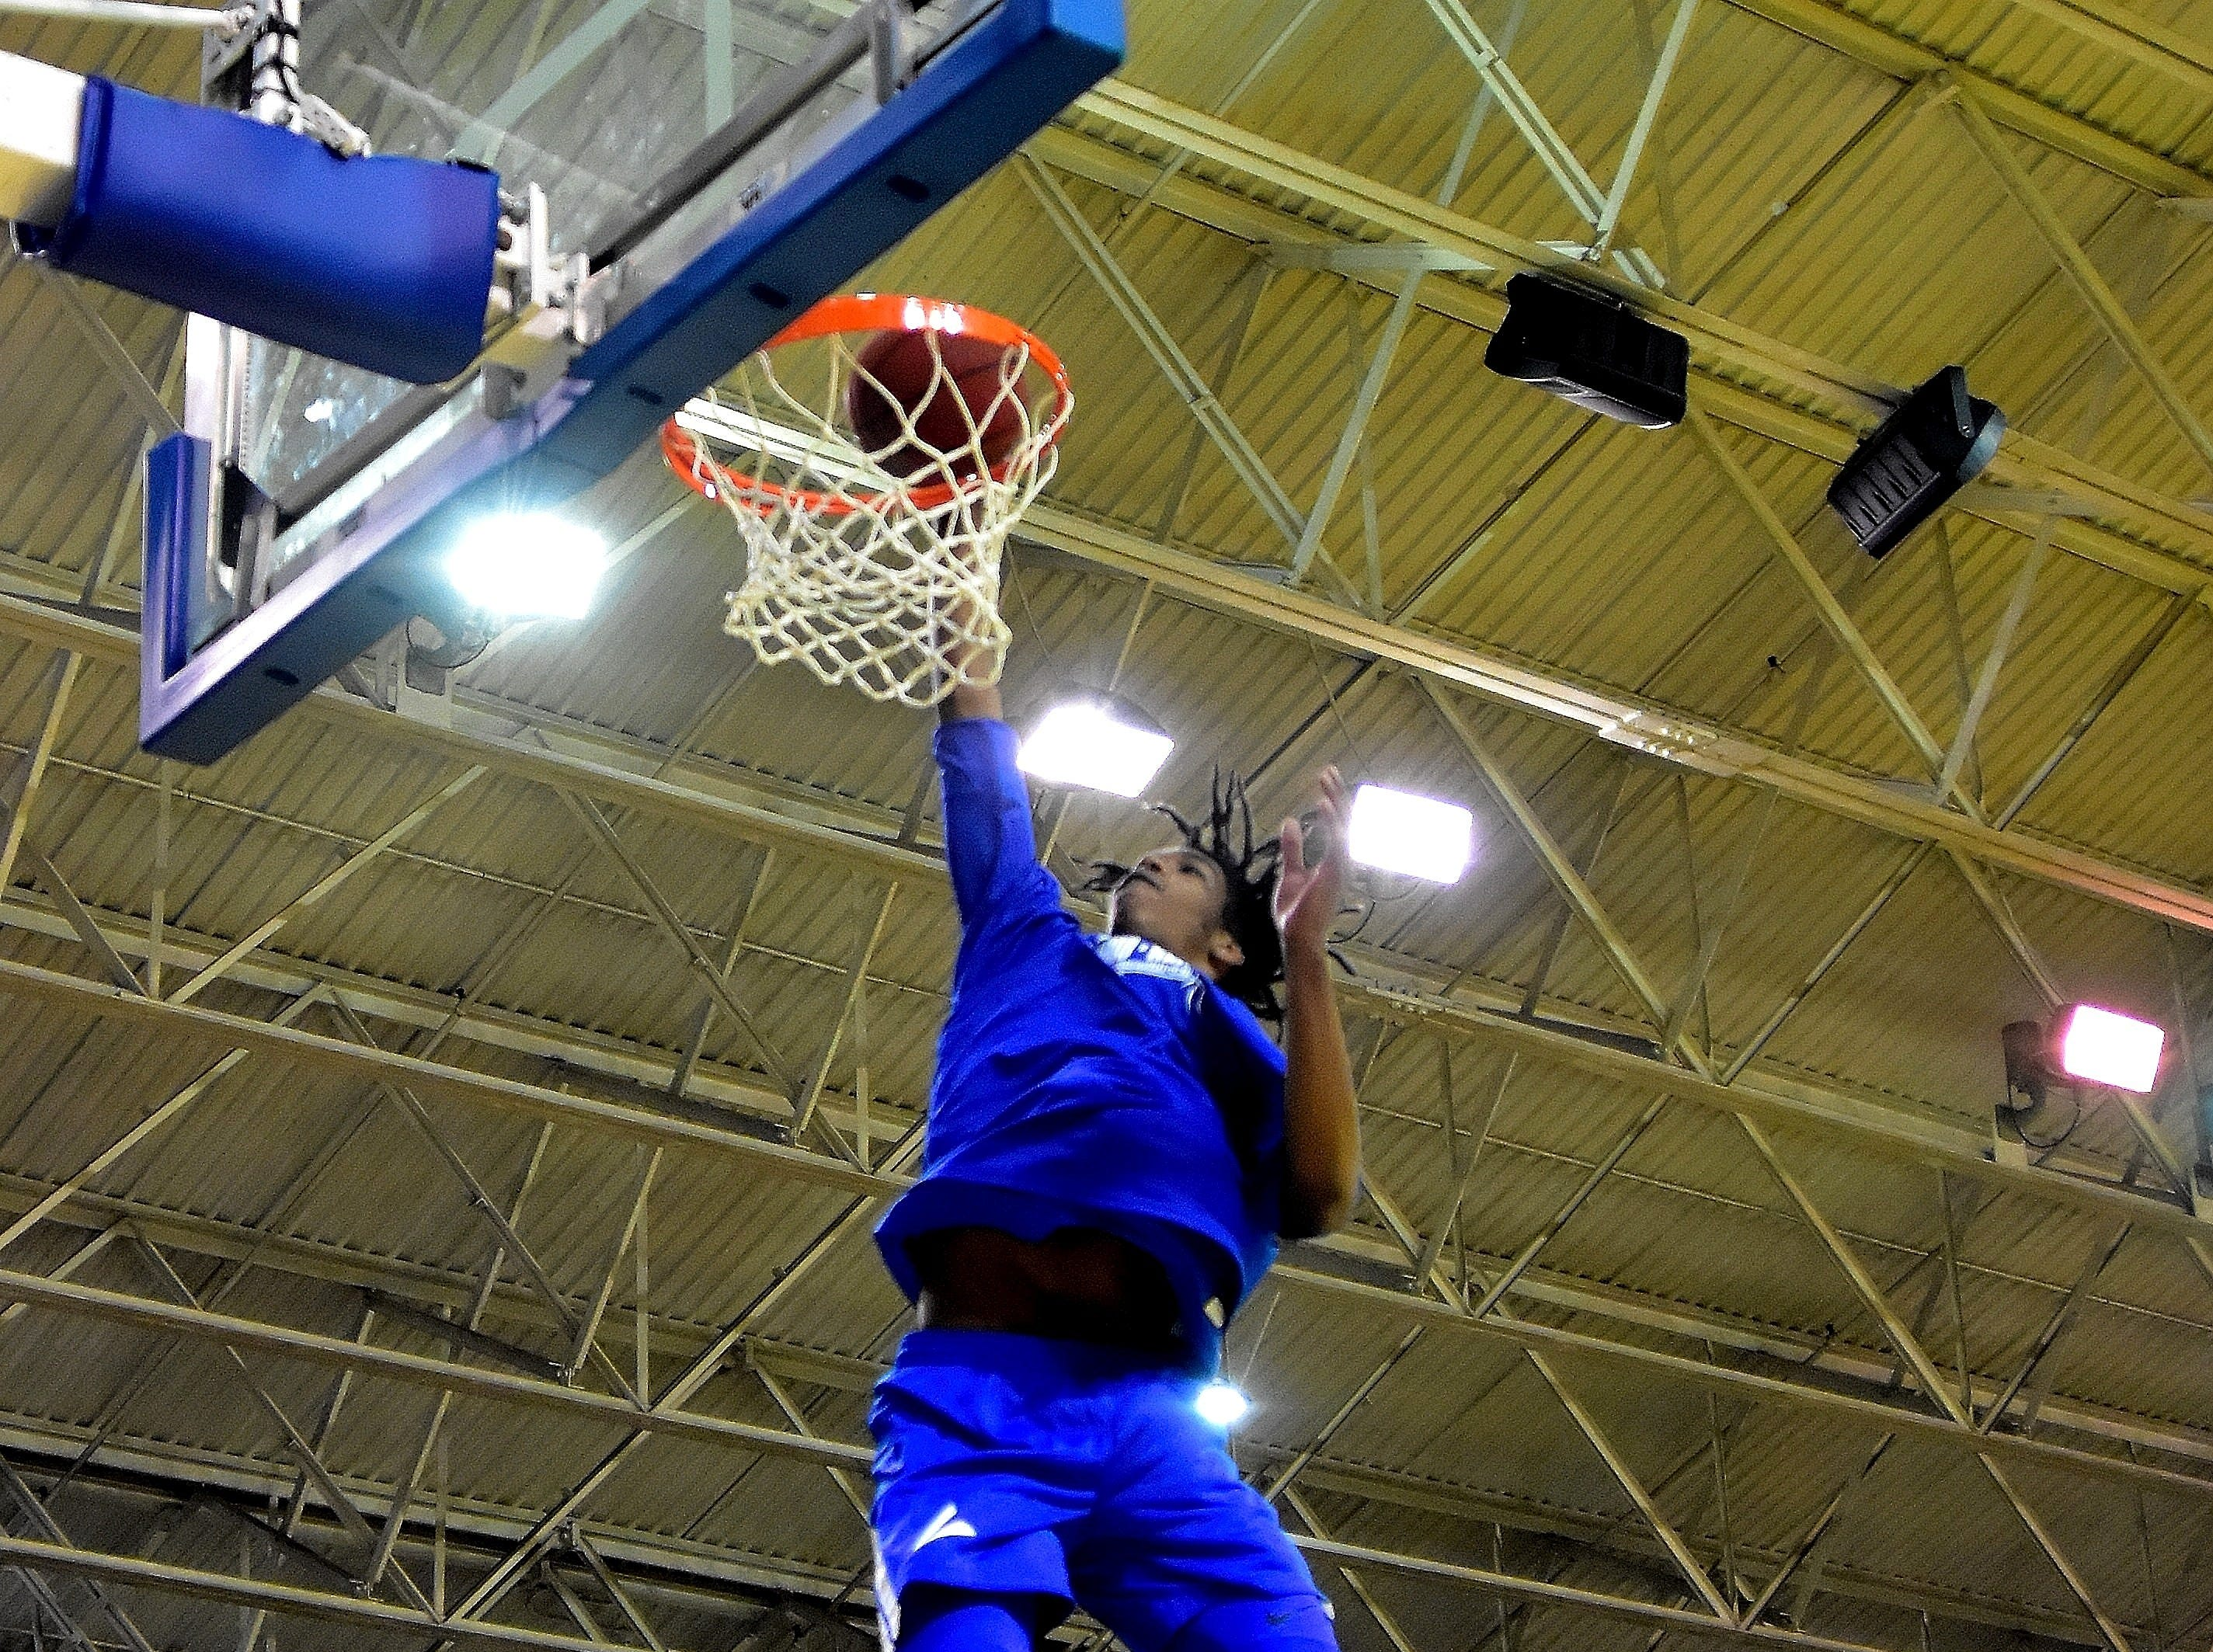 Walton-Verona's Dieonte Miles finishes off a slam dunk buring the boys warmups at the 28th Annual Ohio-Kentucky All Star Games played at Thomas More University, April 13, 2019